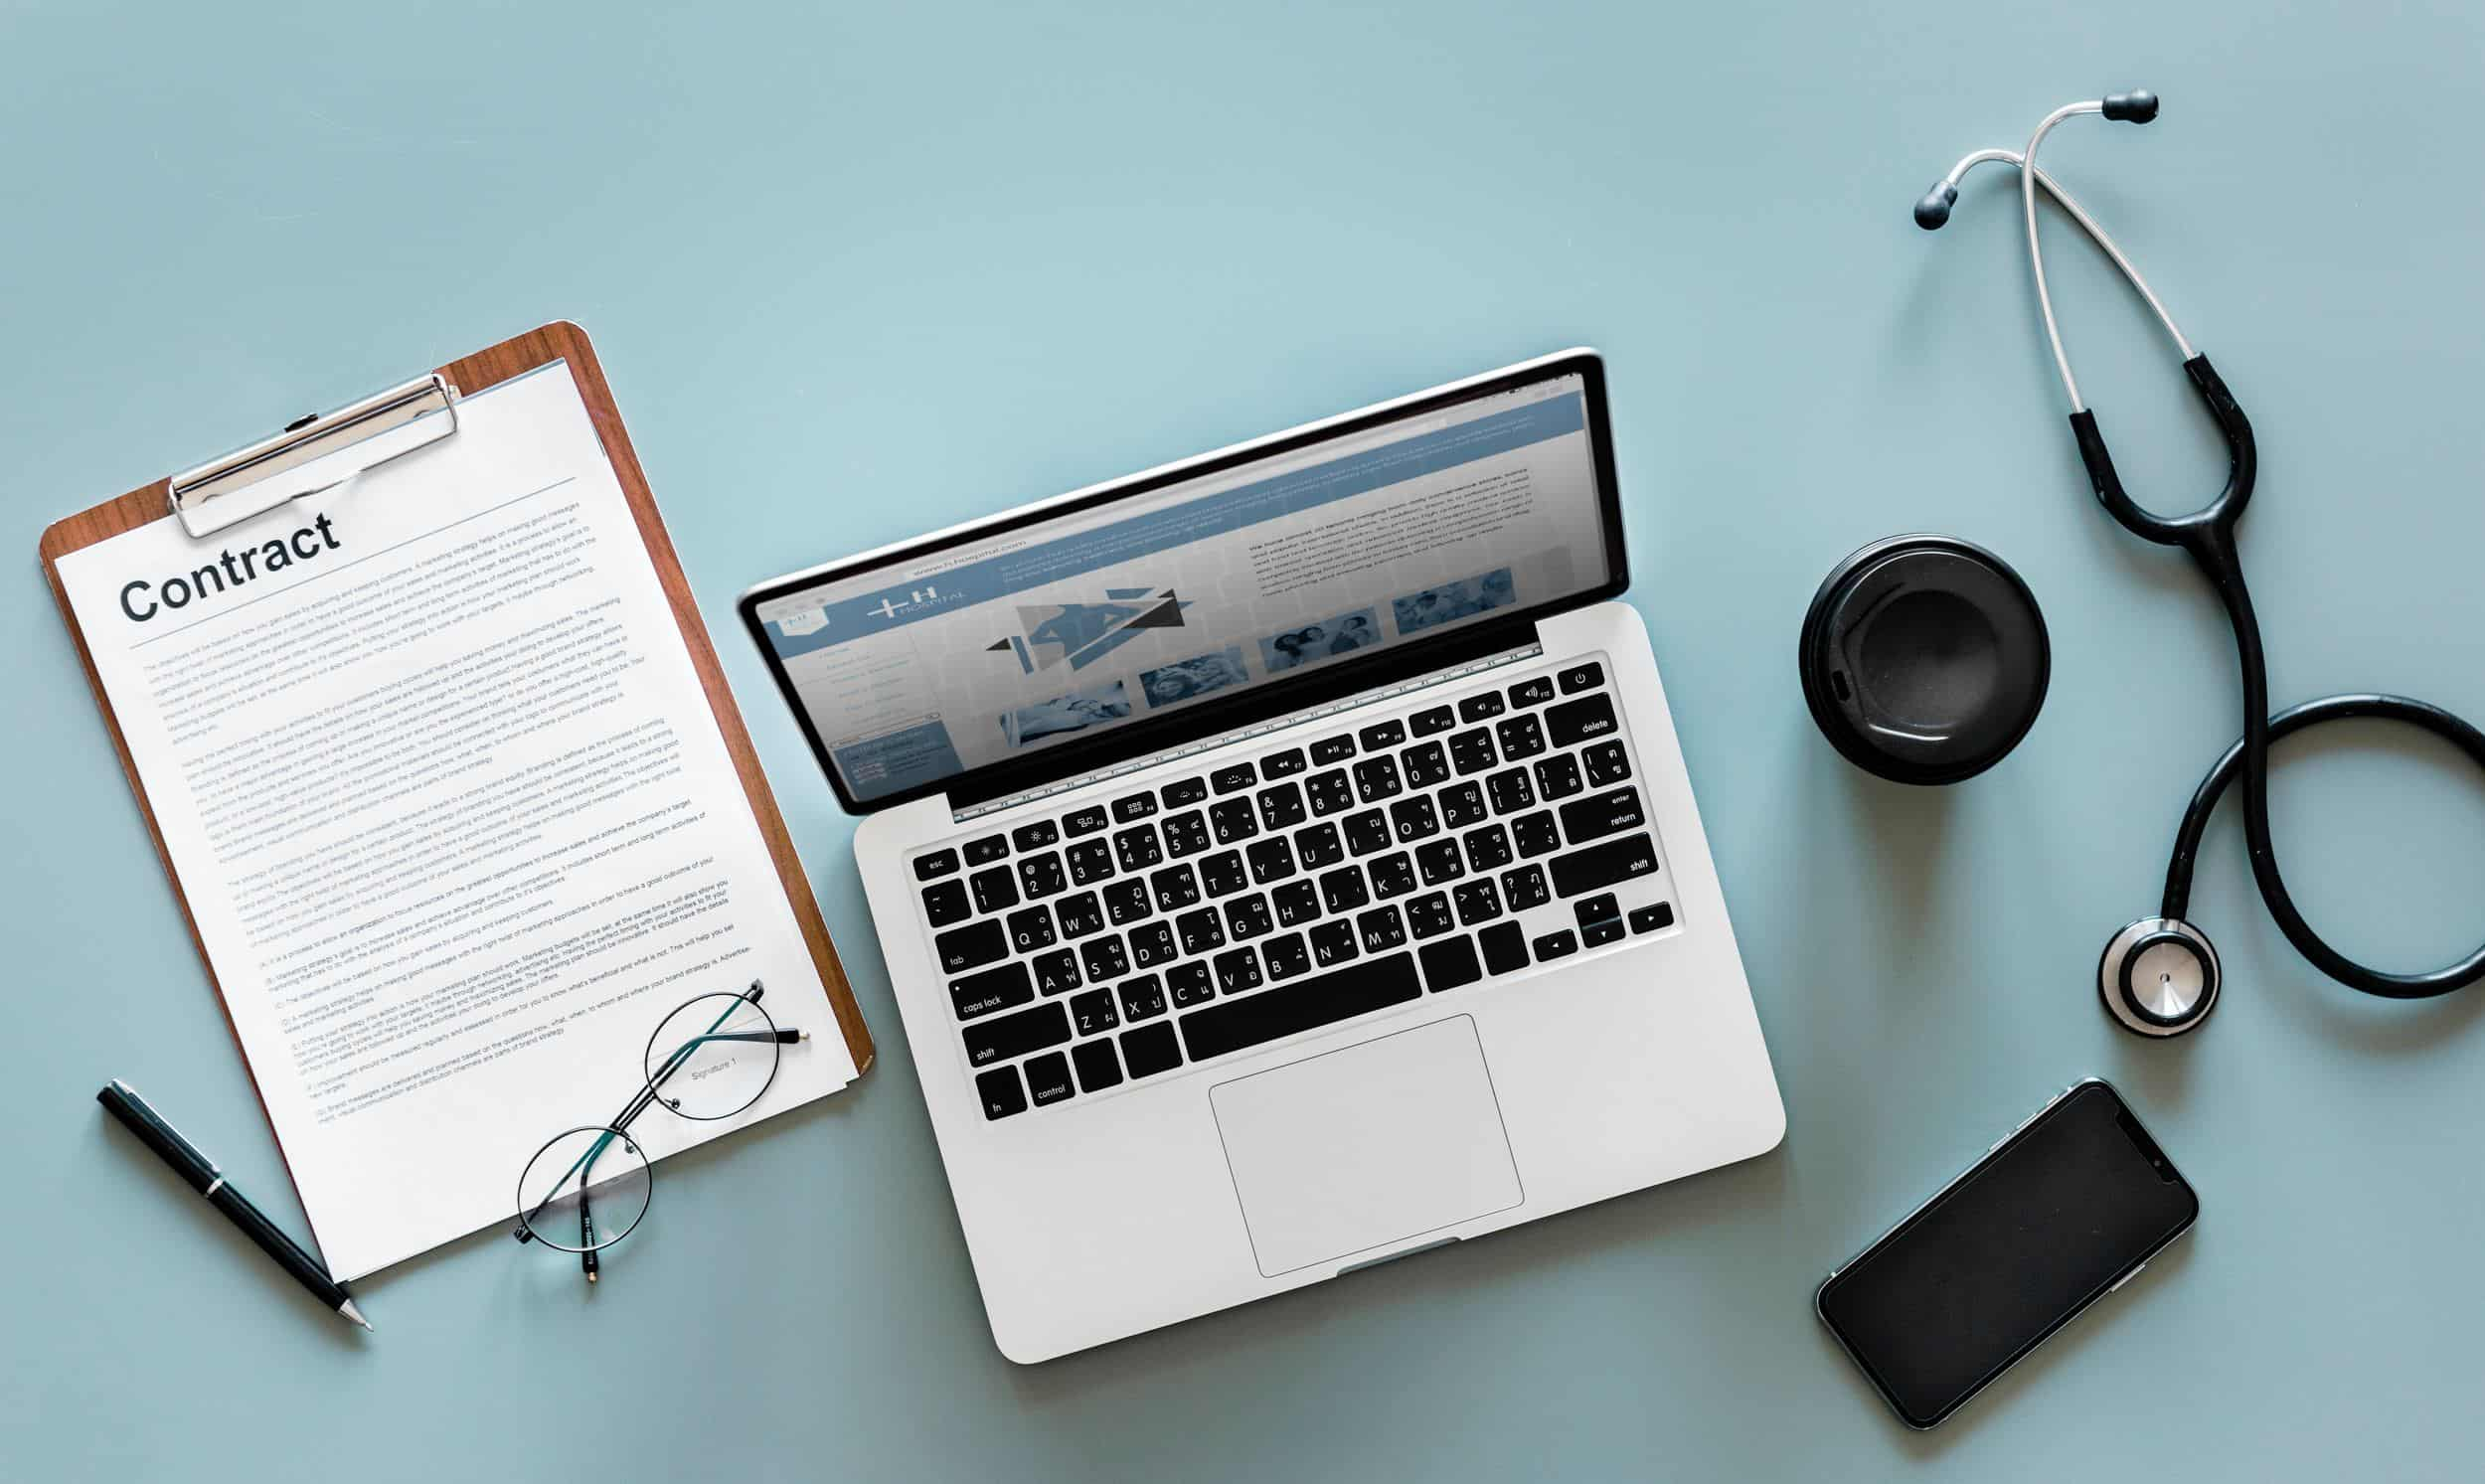 stethoscope and medical pariphanlia around a laptop